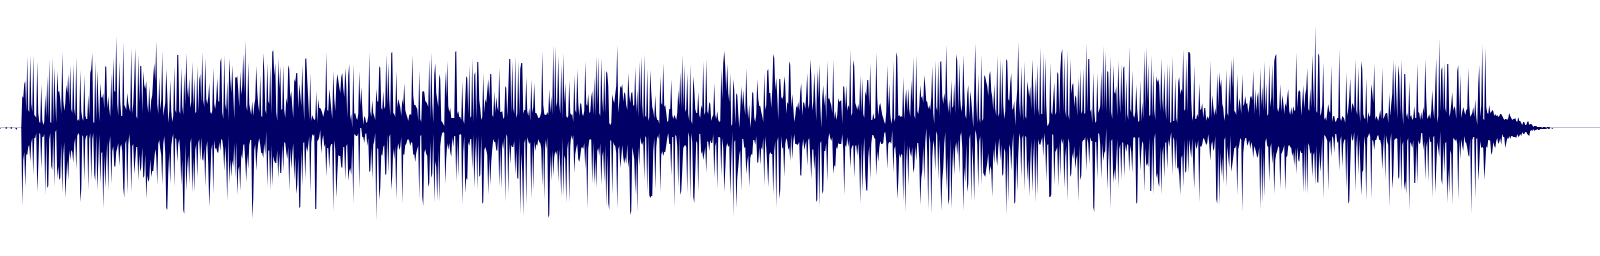 waveform of track #158956